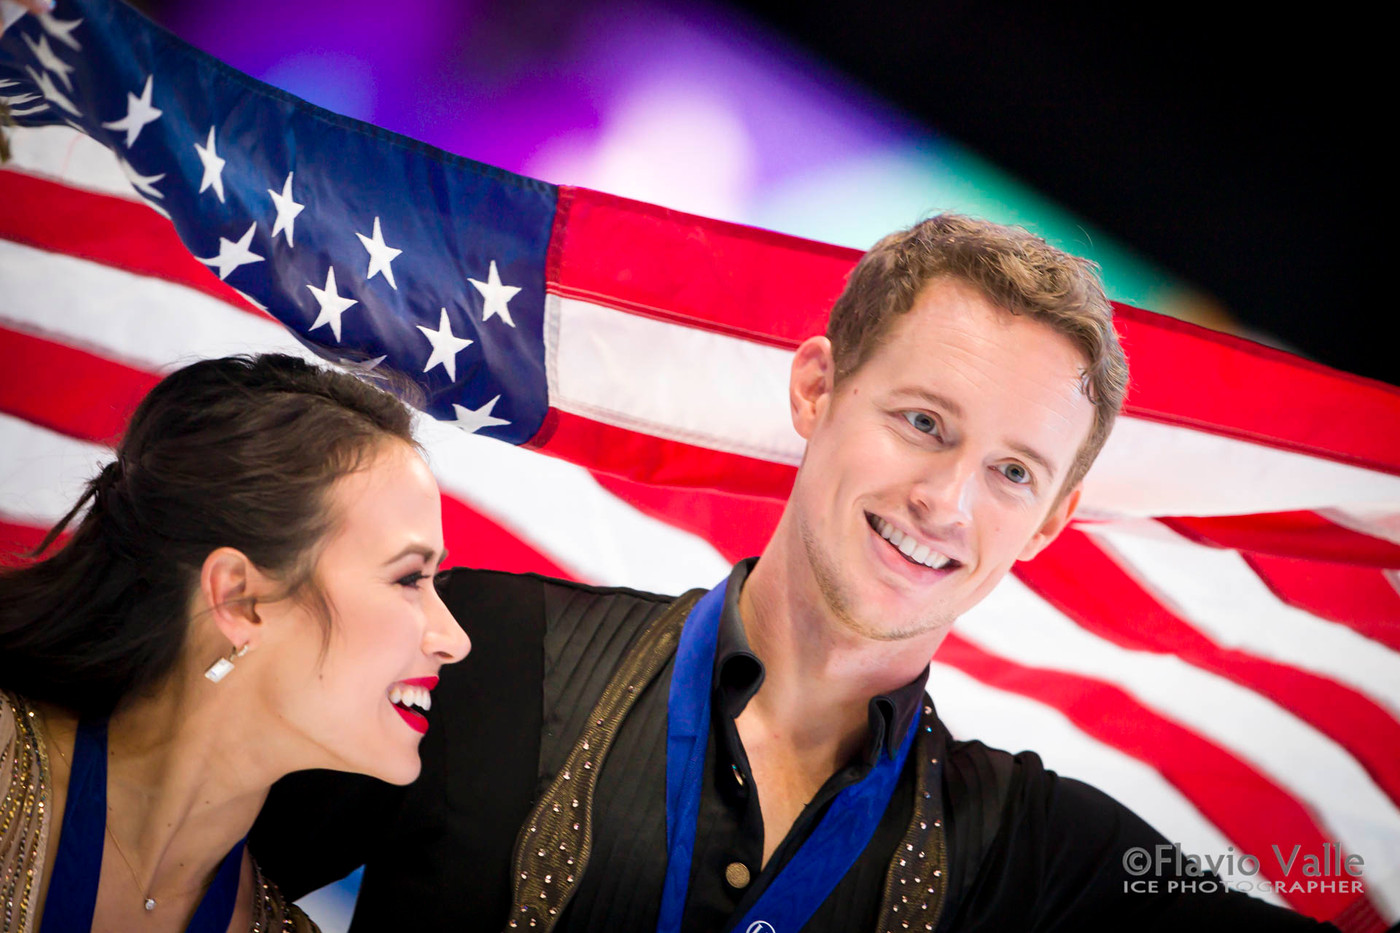 Madison CHOCK / Evan BATES